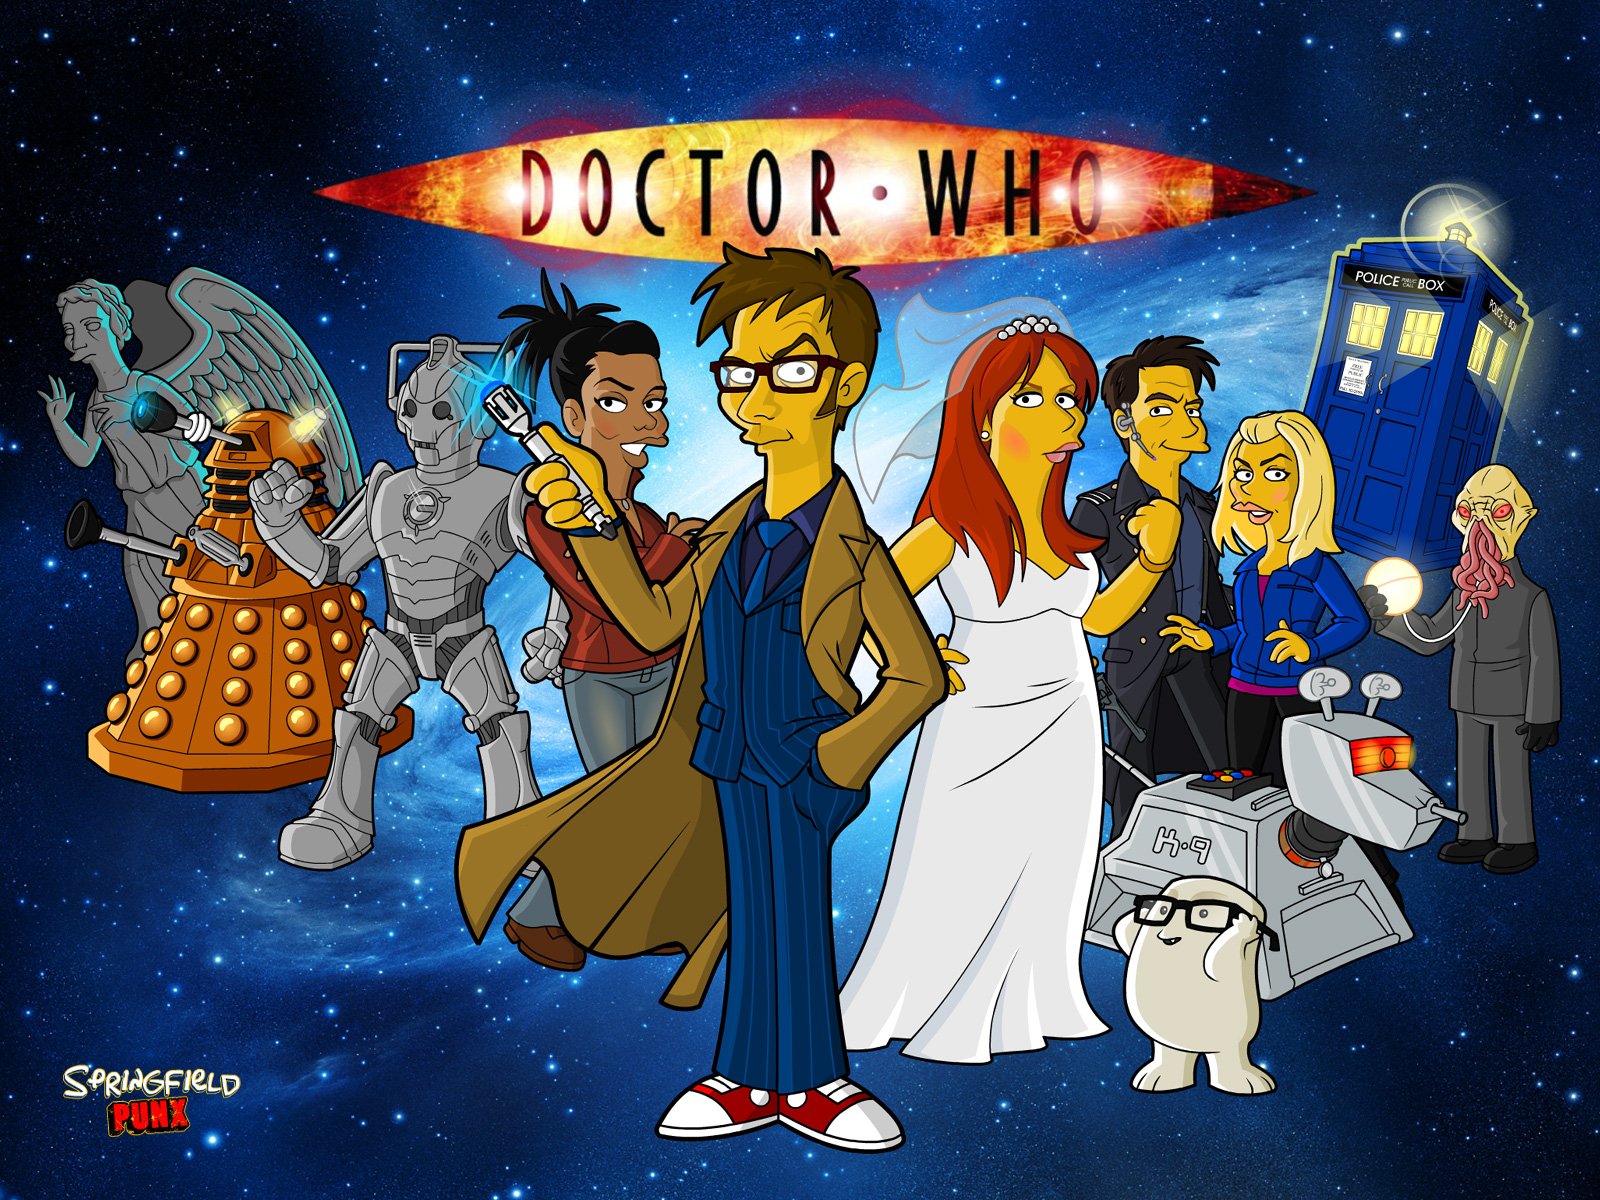 Springfield punx doctor who tennant wallpaper - Dr who wallpaper ...